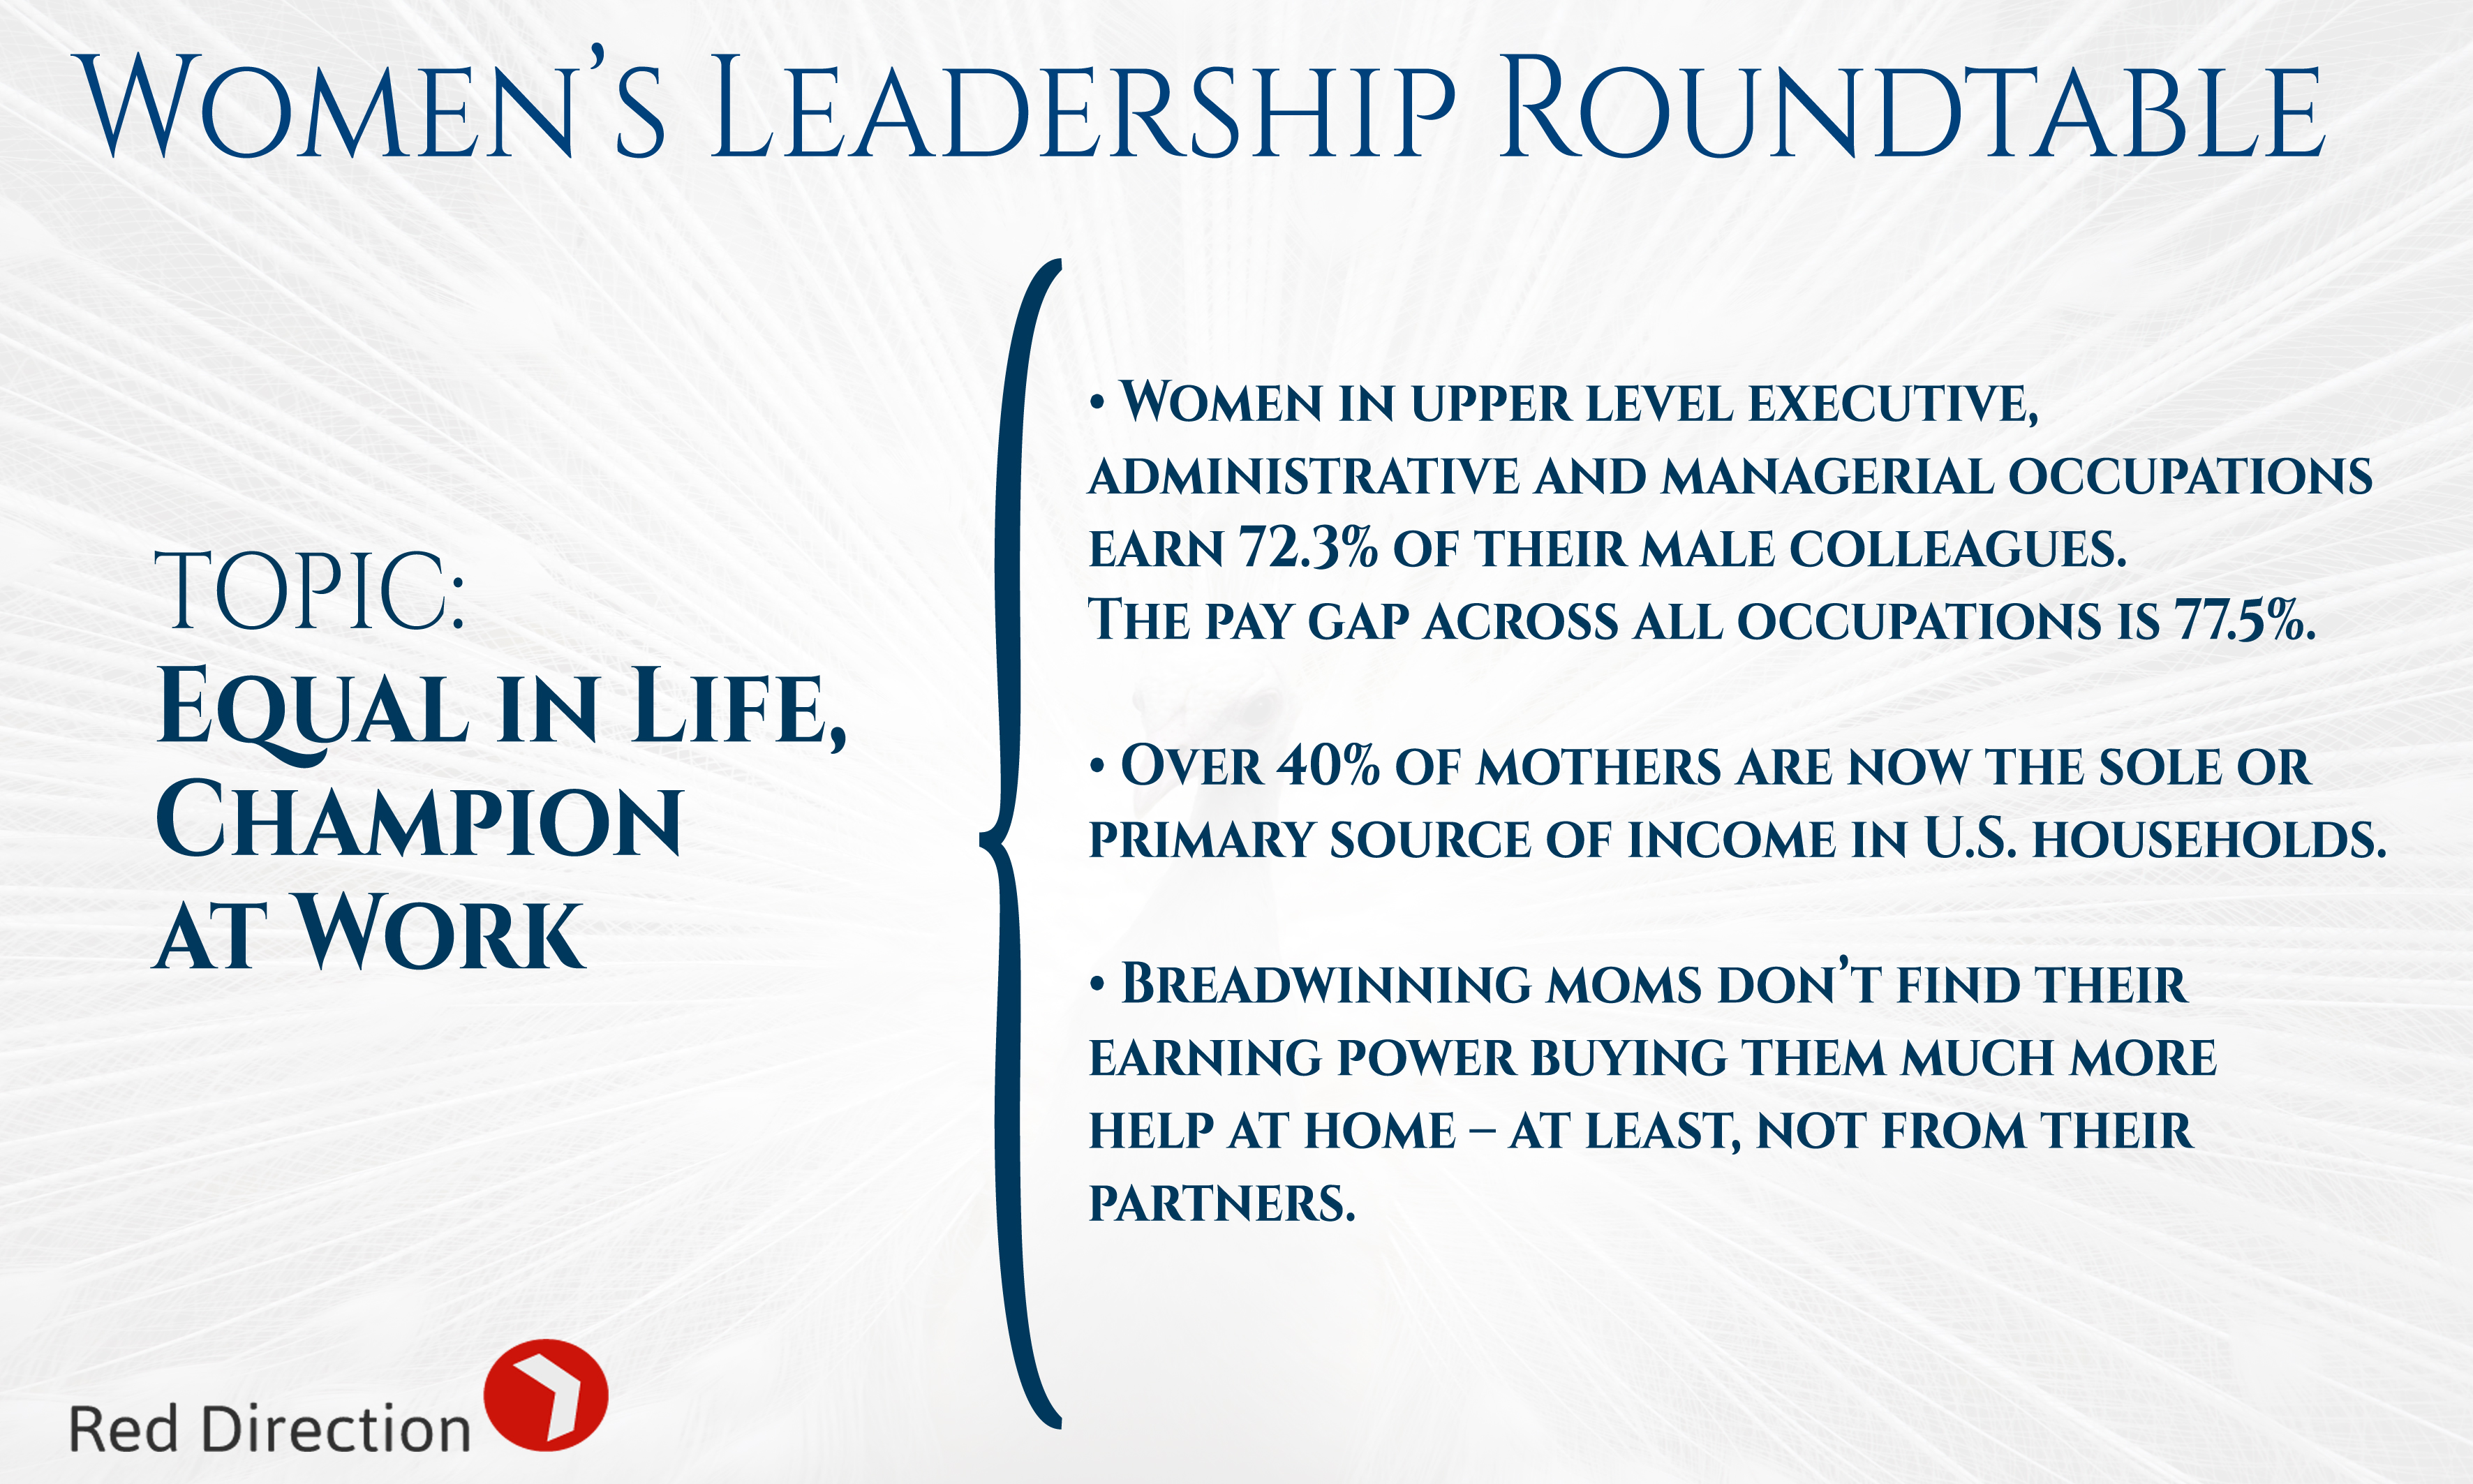 Women's Leadership Roundtable 2